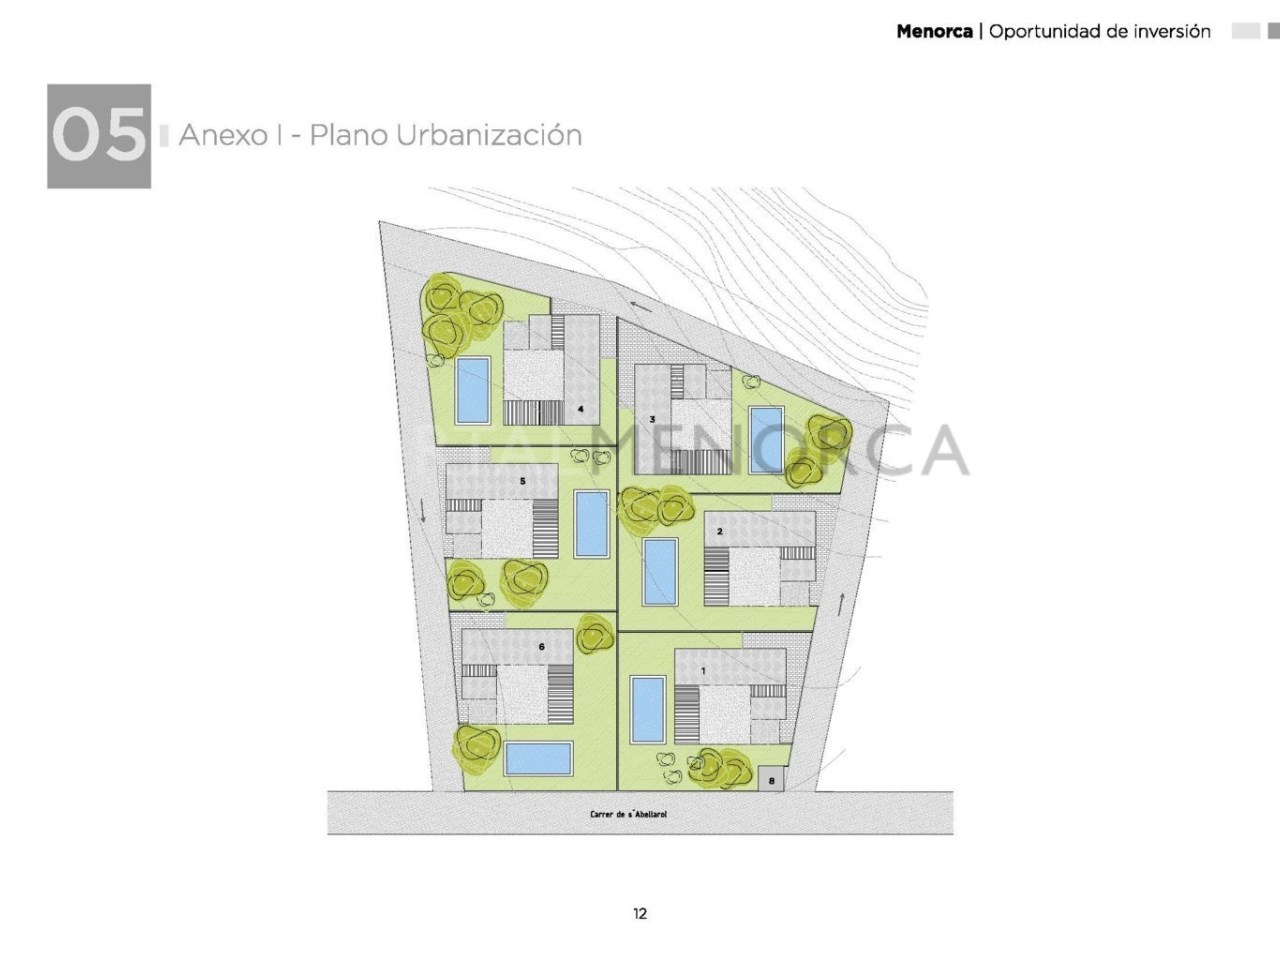 Plot for sale in Cala Blanca, Ciutadella promotion of 6 homes -architectural plans